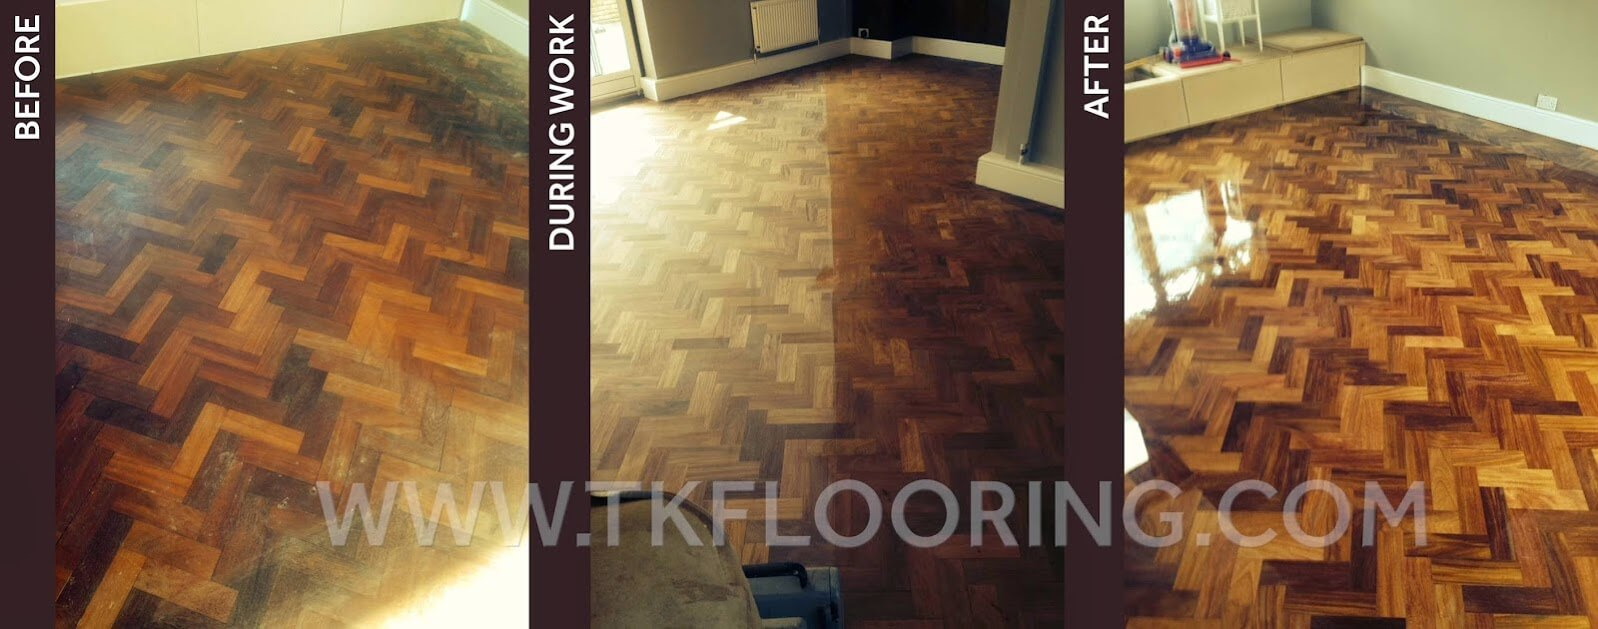 floor sanding specialist London